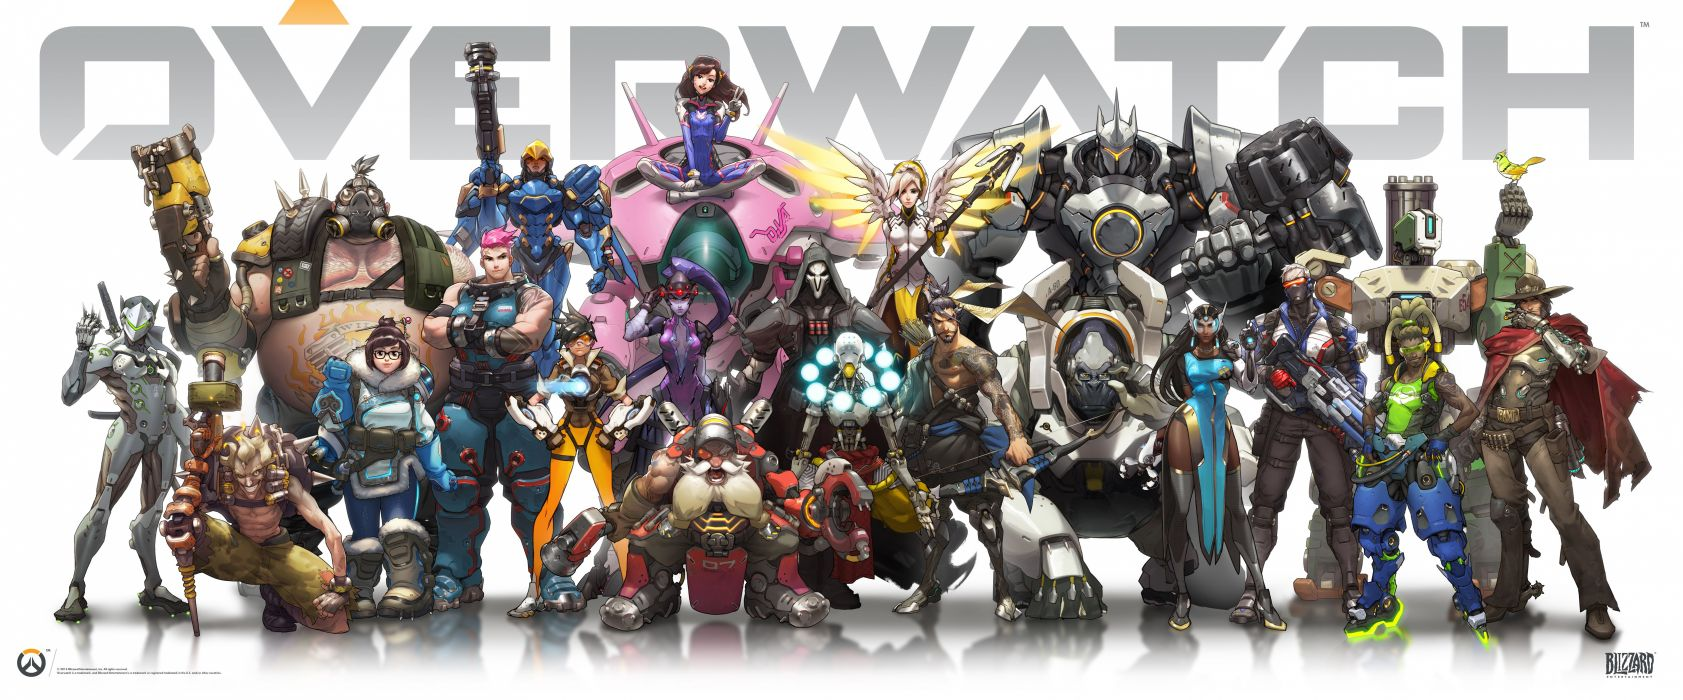 OVERWATCH shooter action fighting mecha sci-fi futuristic warrior poster wallpaper